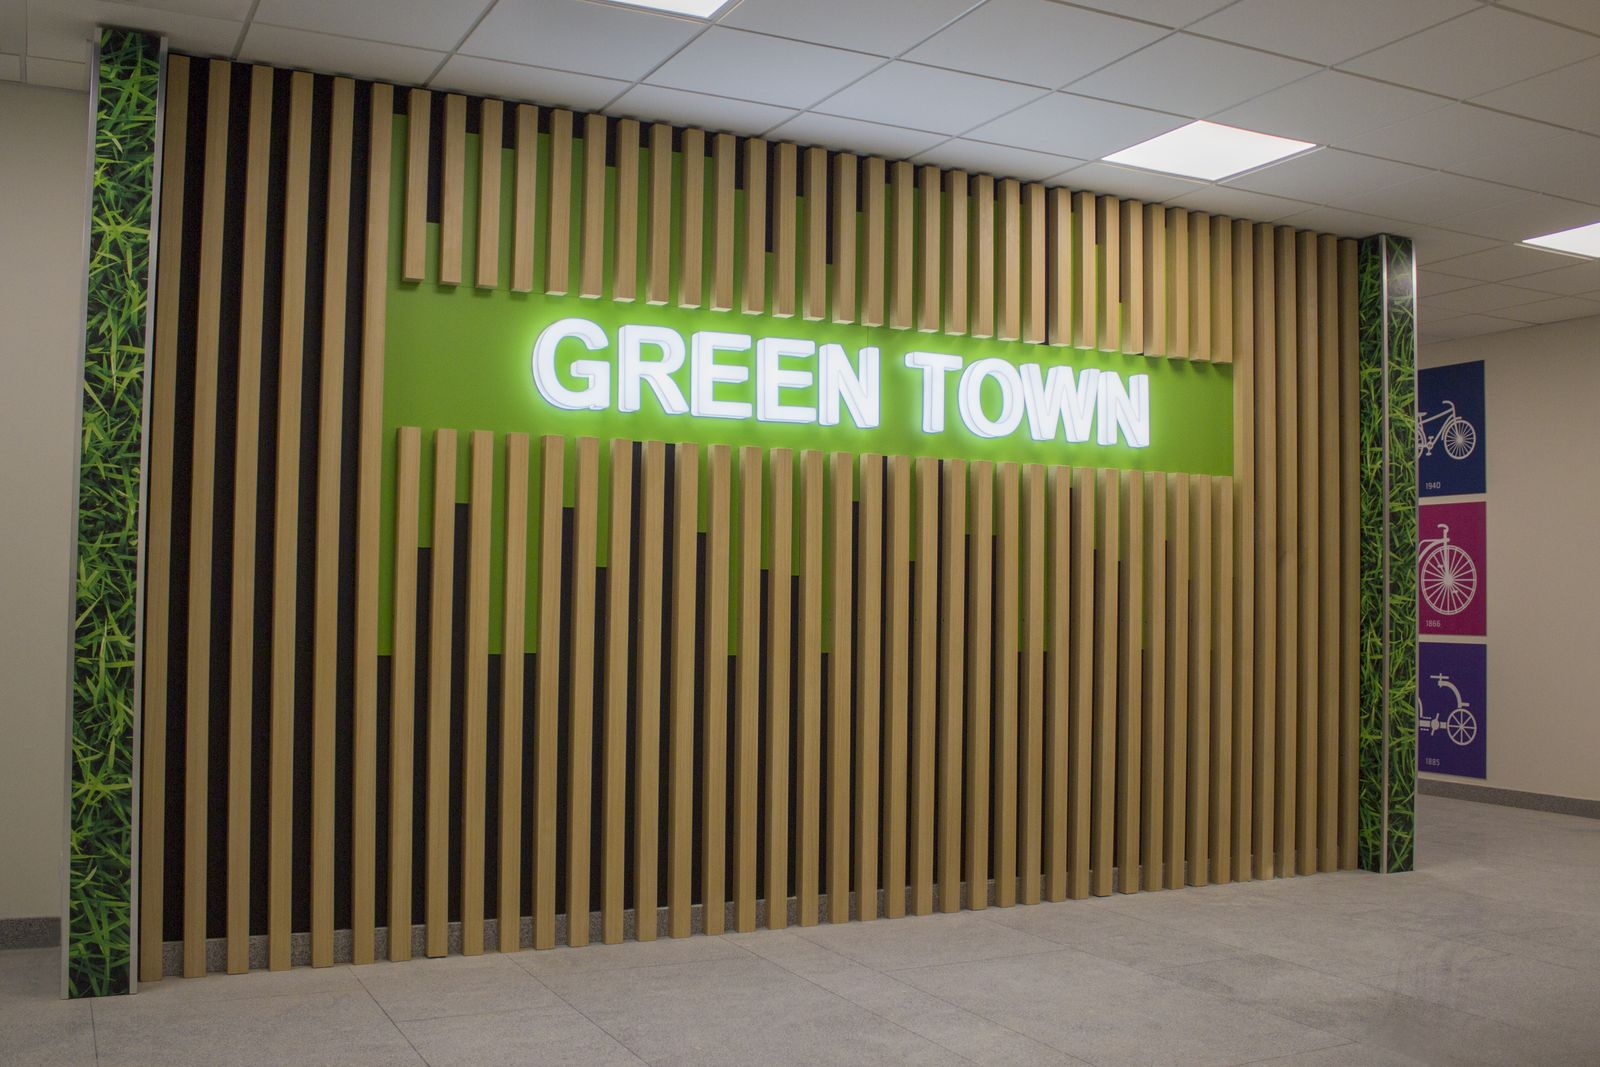 Ameriabank illuminated interior signage with Green Town text and custom plaques made of wood